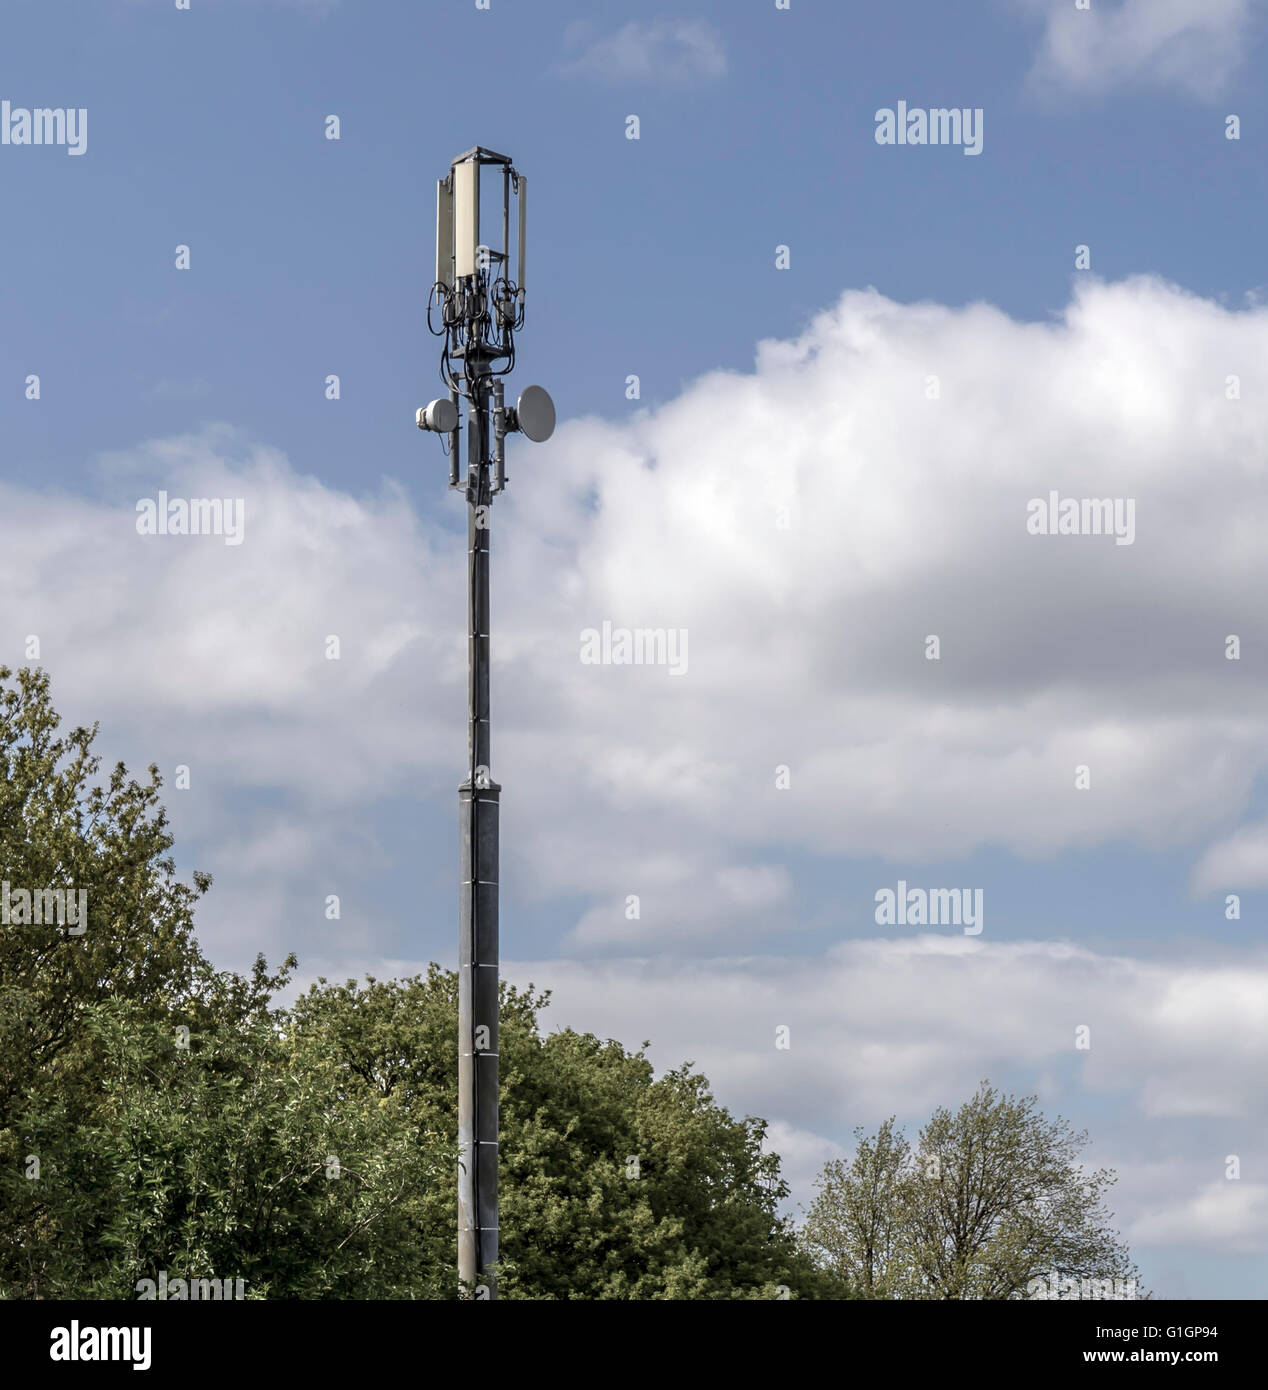 Mobile Telephone Communications Tower against blue sky and trees - Stock Image